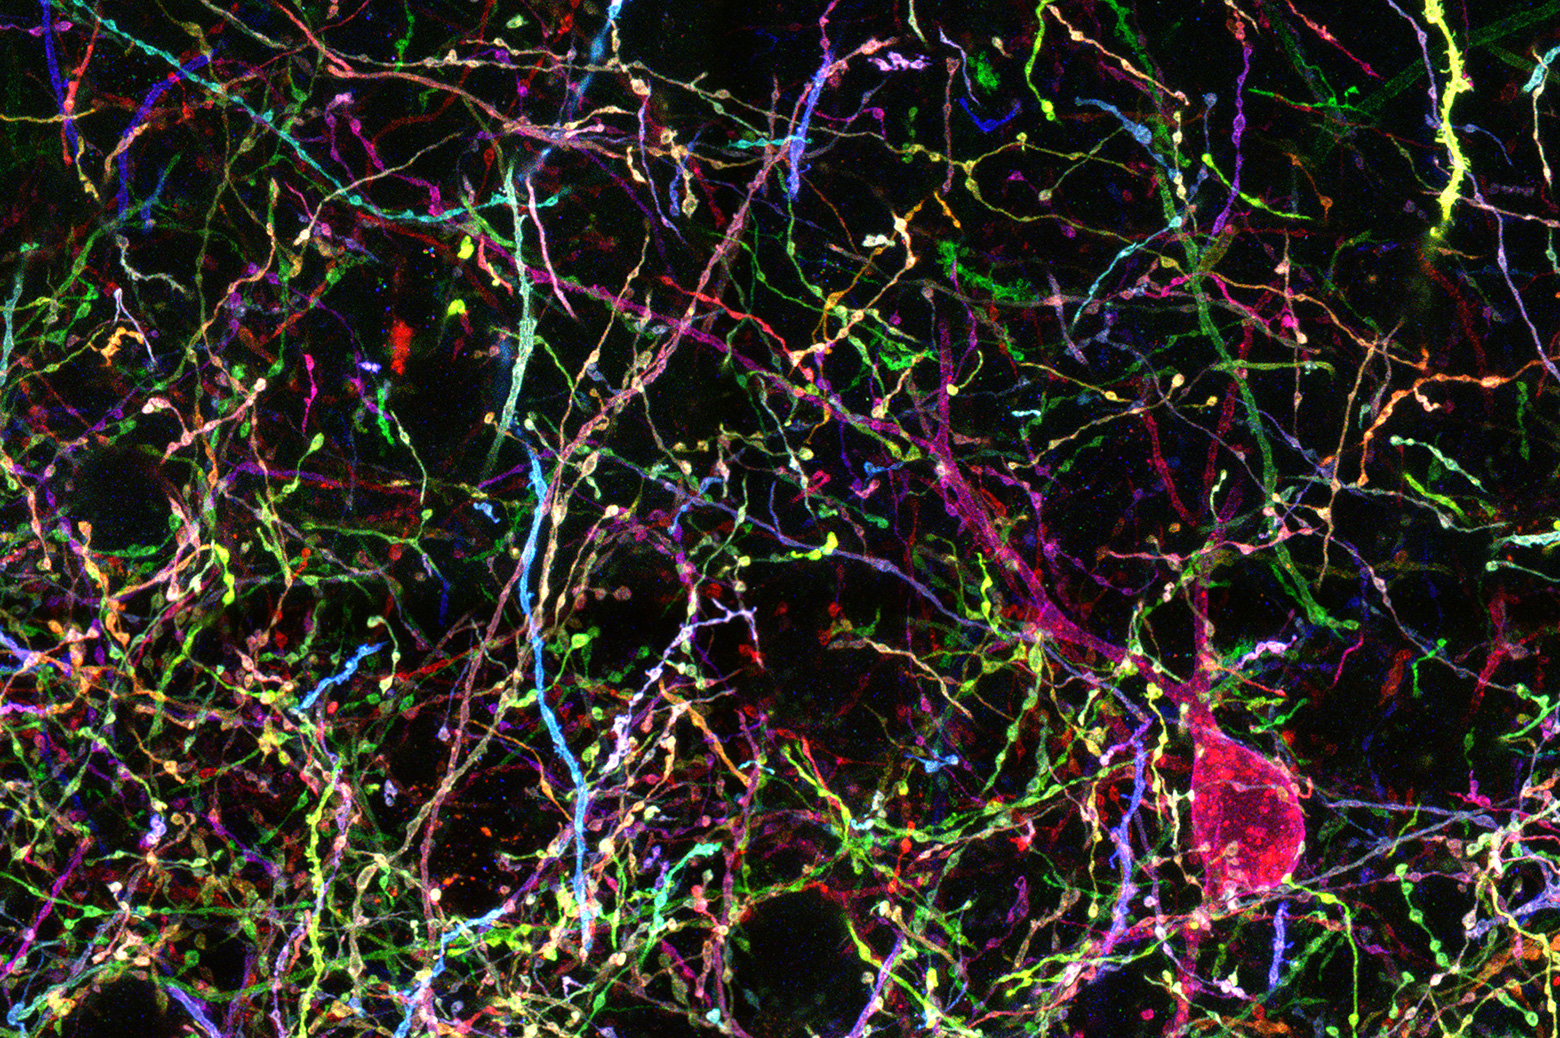 A multicolored web neurons, all long strands connecting rounder cell bodies